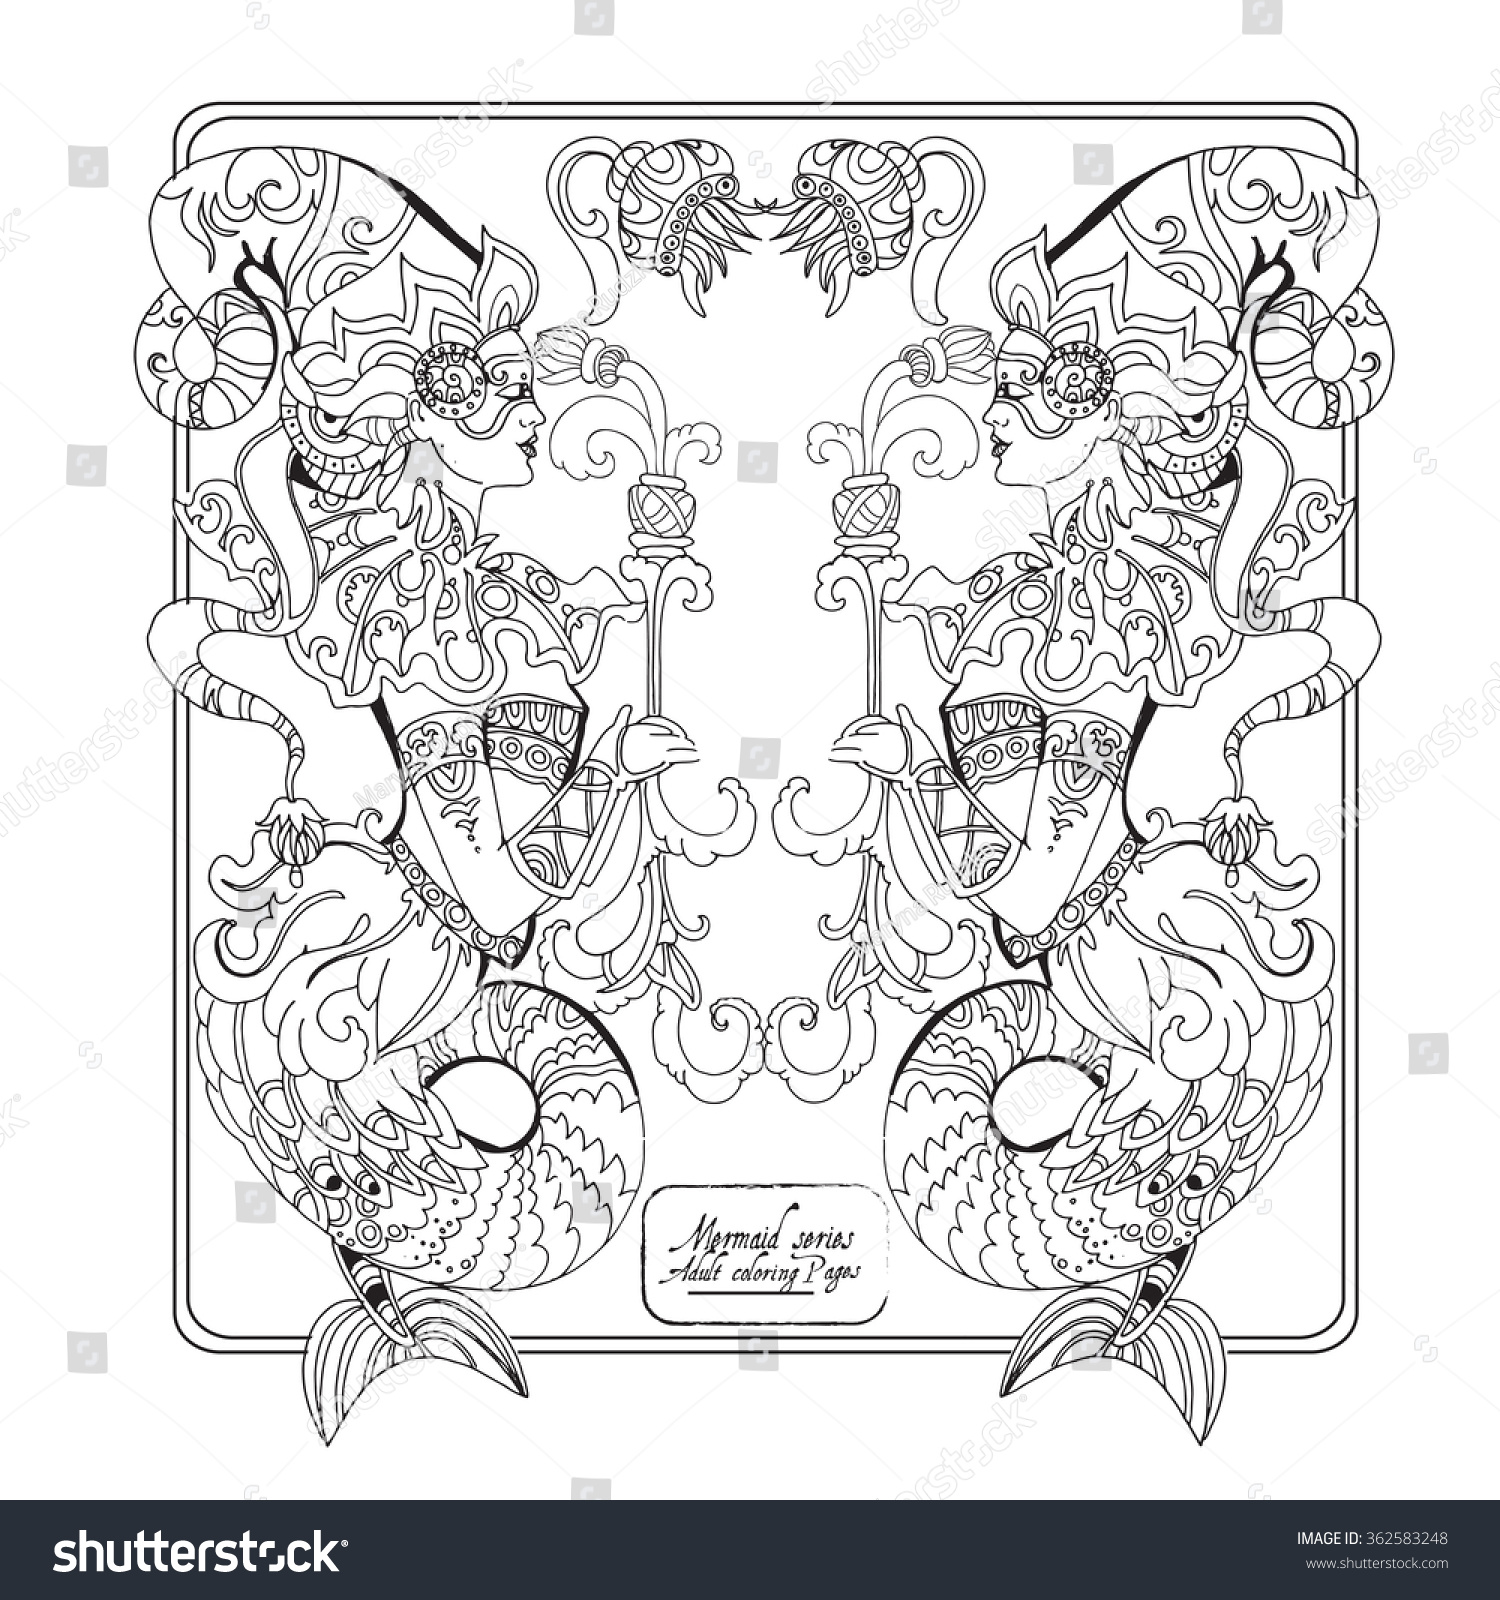 Coloring pages adults mermaids - Vector Adult Coloring Book Page With Vintage Mermaids Ladies Ornament Eps